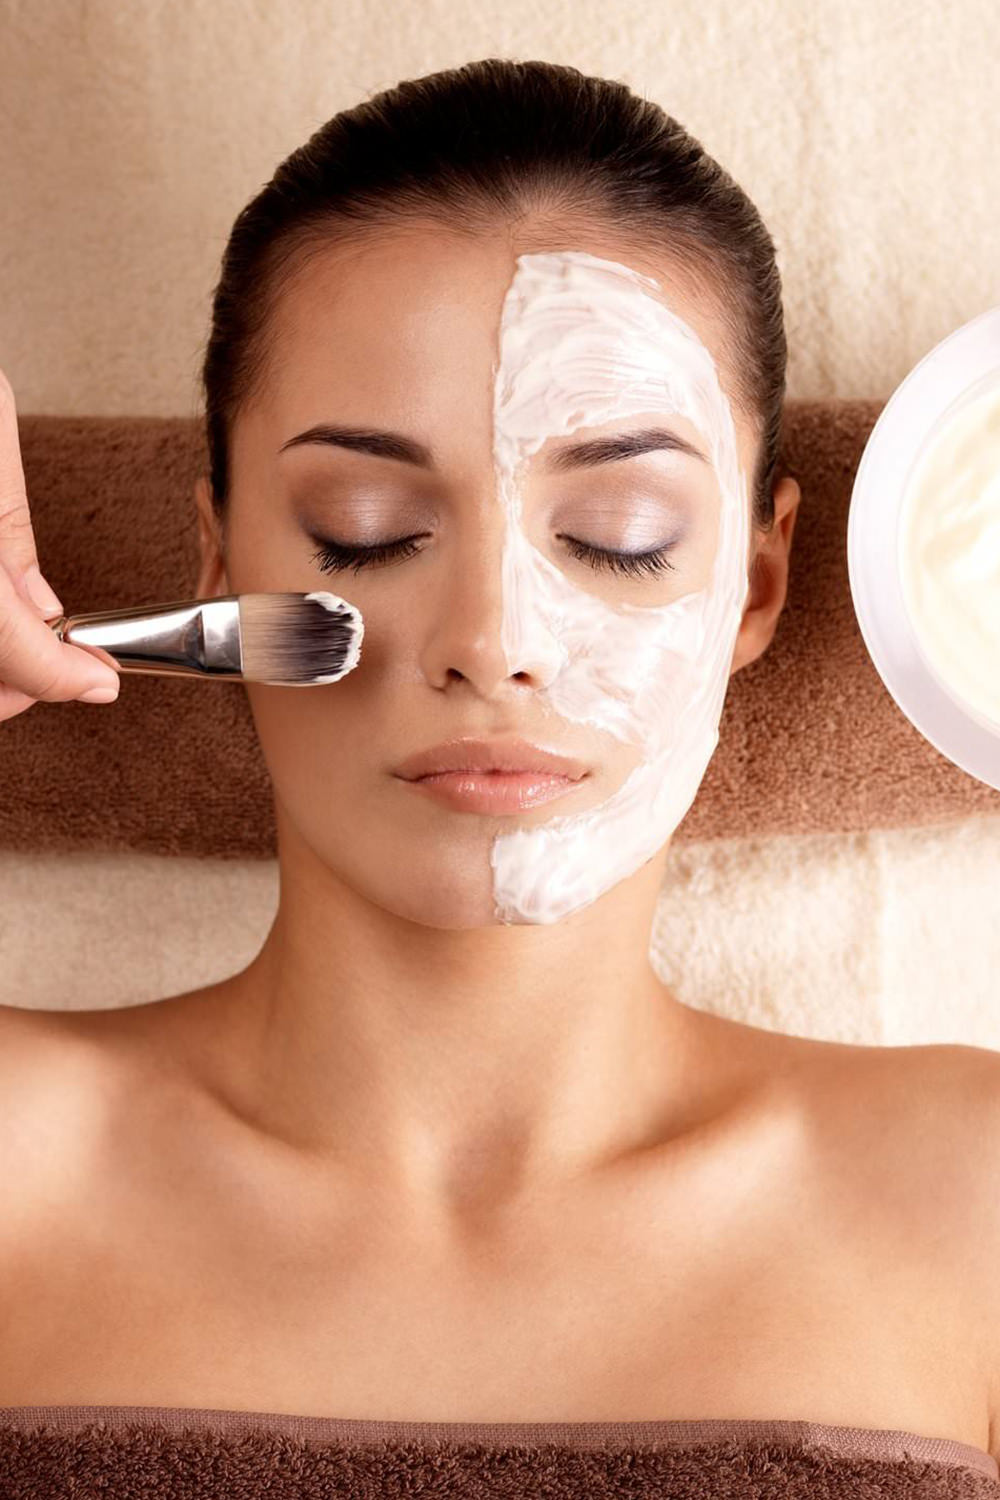 Clinical Facial - from $80Customized based on skin type and need, the Clinical Facial refines the skin, smoothing uneven texture, diminishing acne, and lightening discoloration. This effective treatment features a cleansing, steam and extraction, and a personalized mask or peel. *Recommended for first time spa patients.